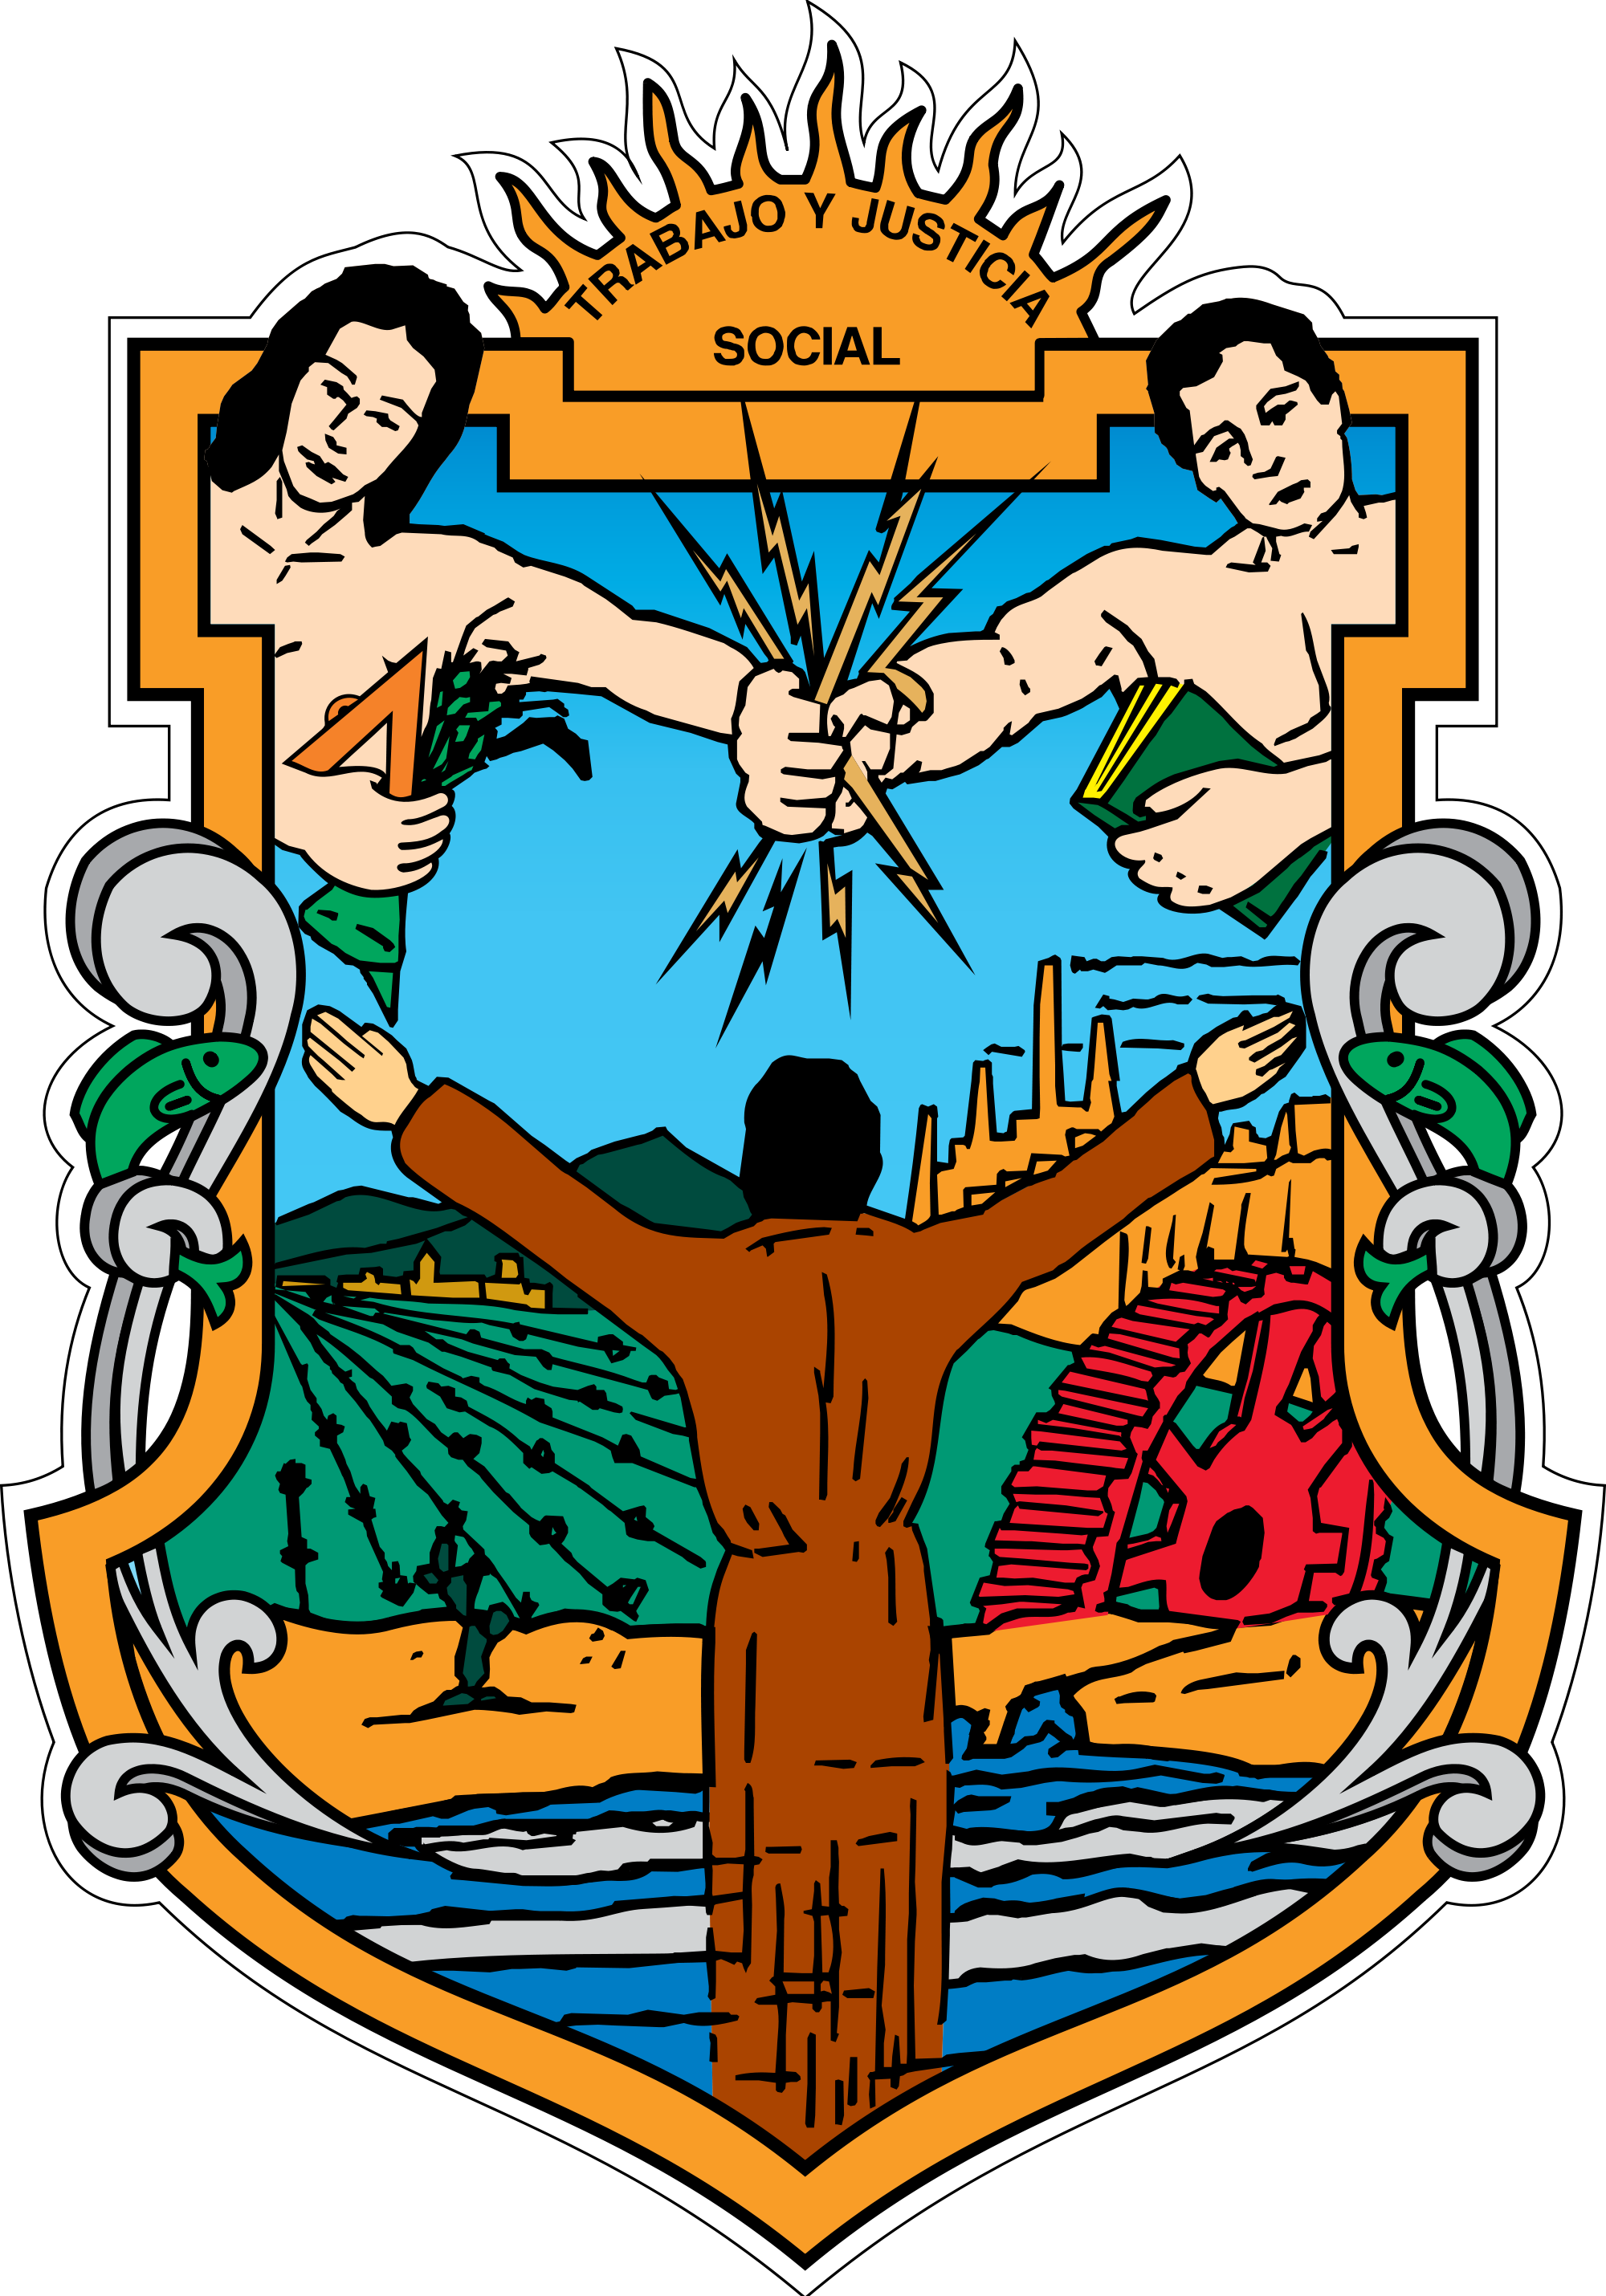 California svg state graphic. File coat of arms